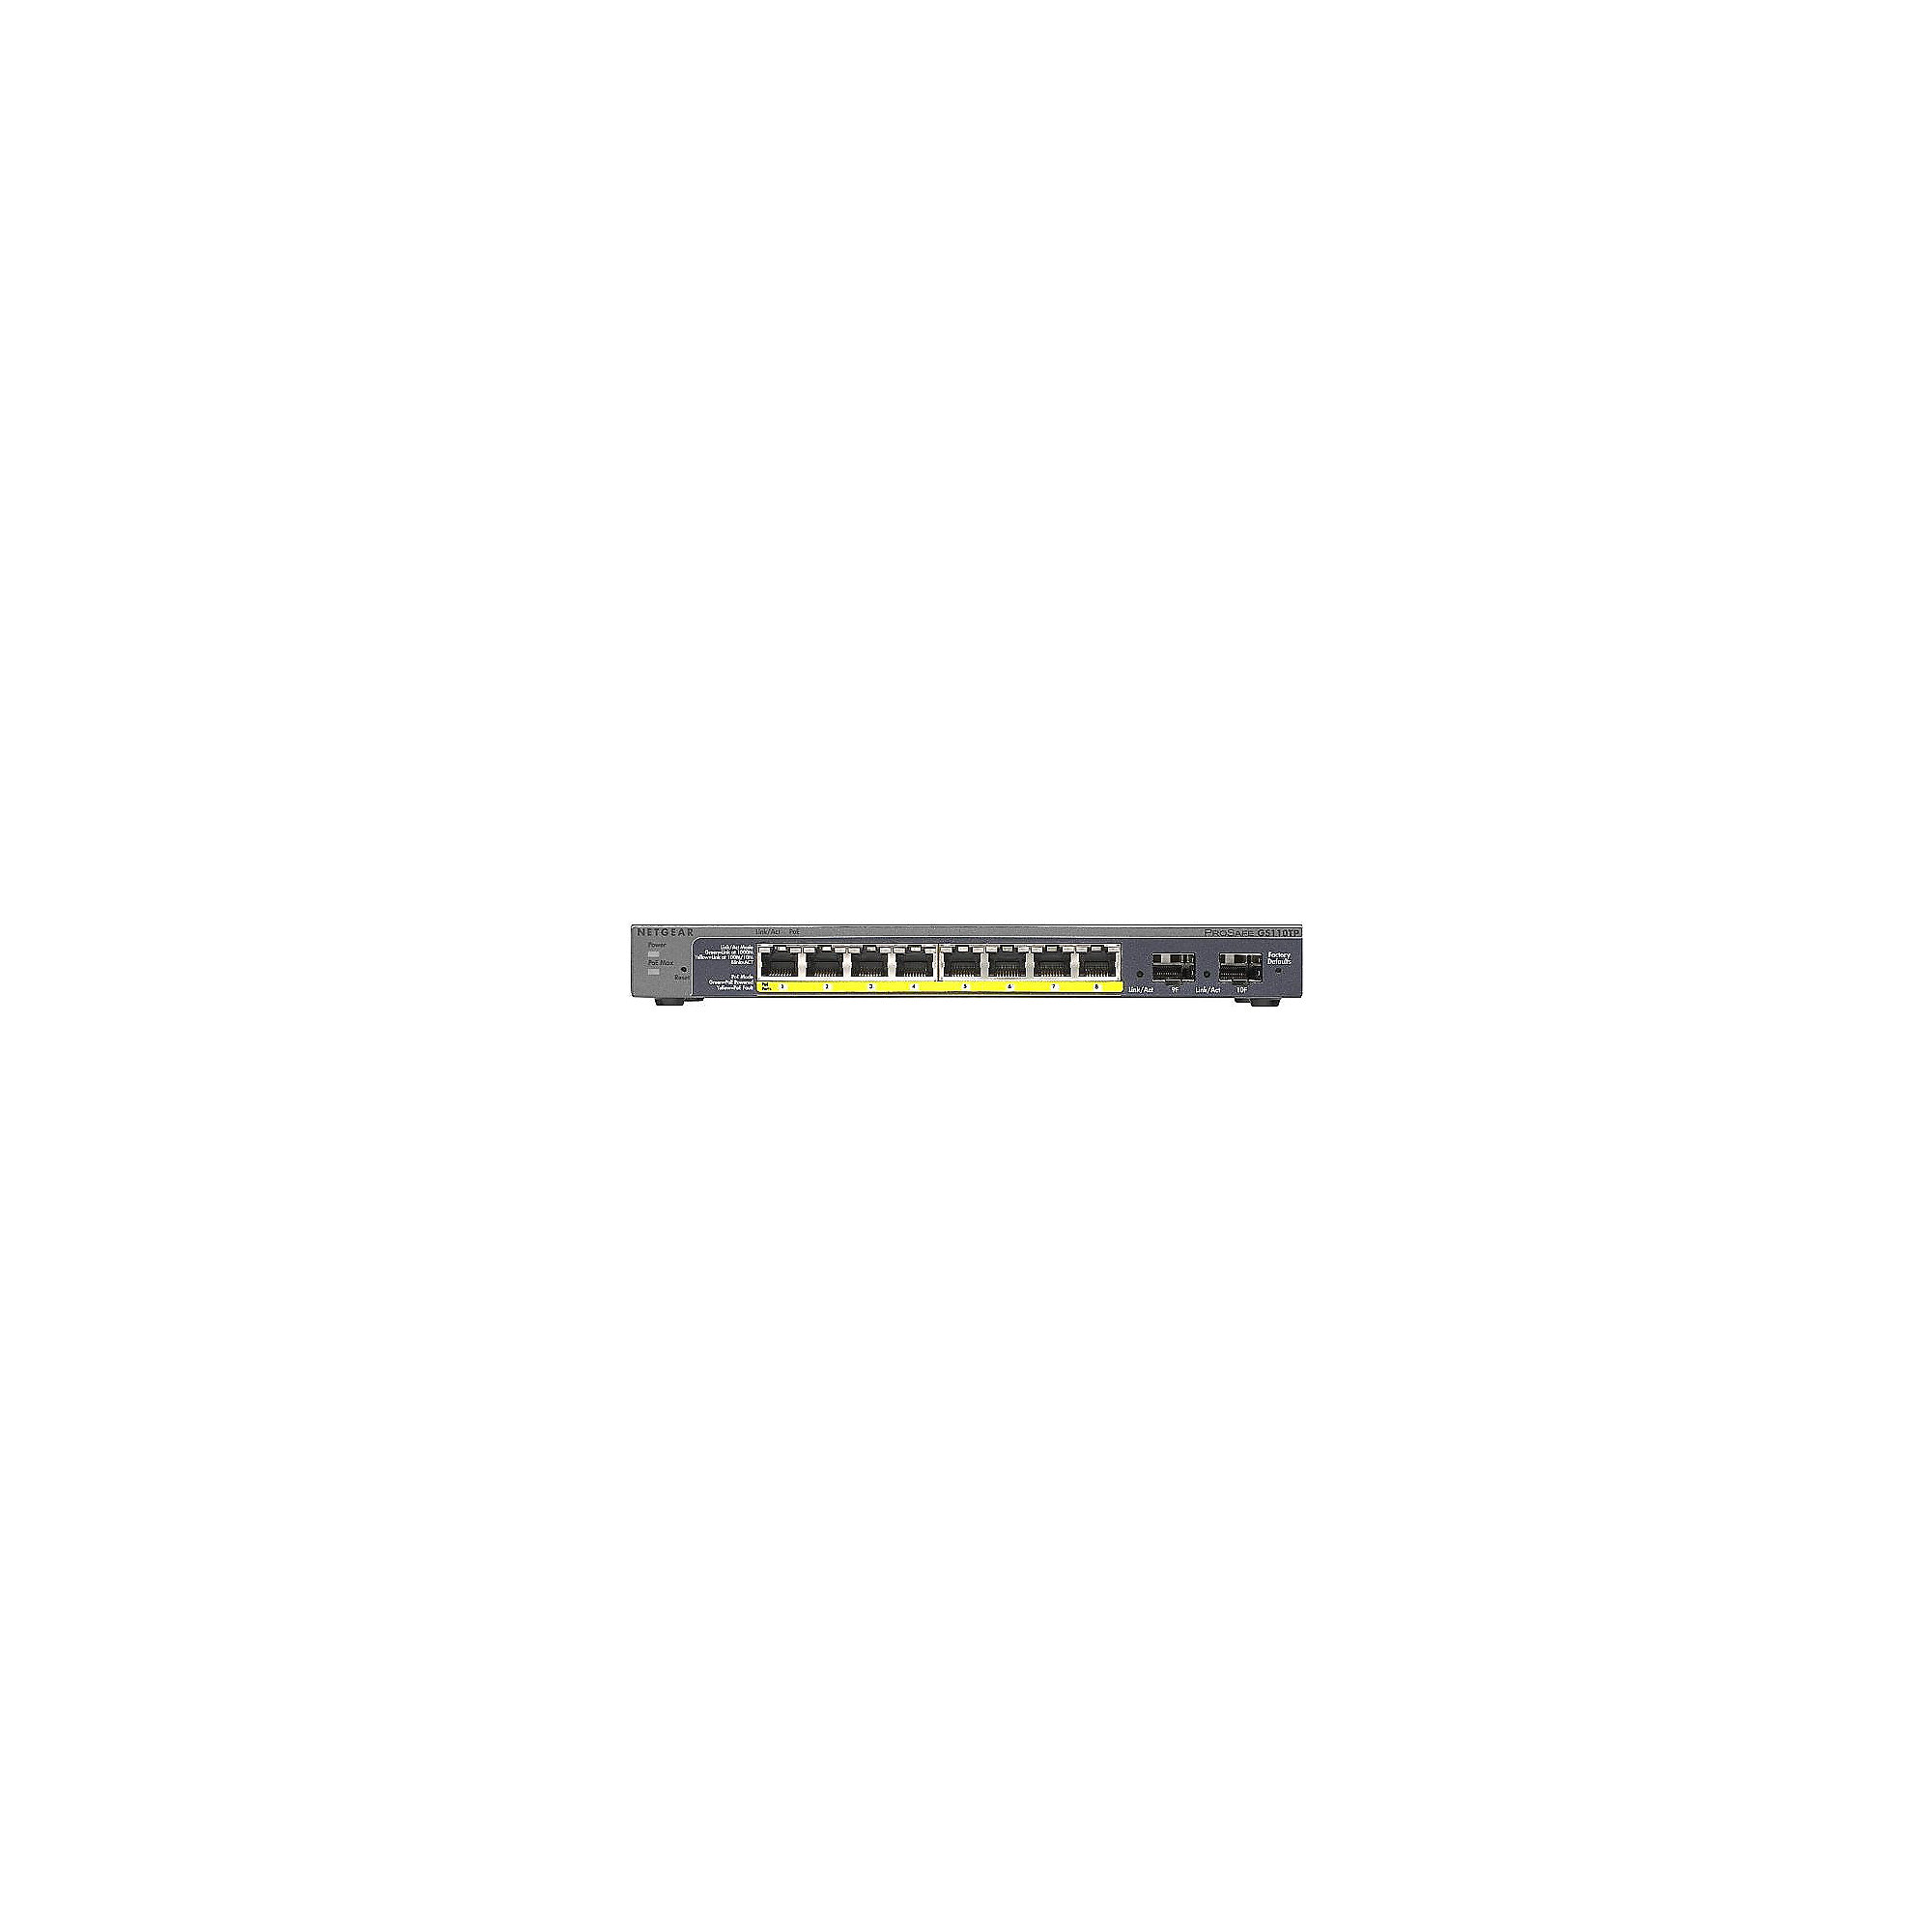 Netgear GS110TPv2 8 Port Gigabit Ethernet Smart Switch